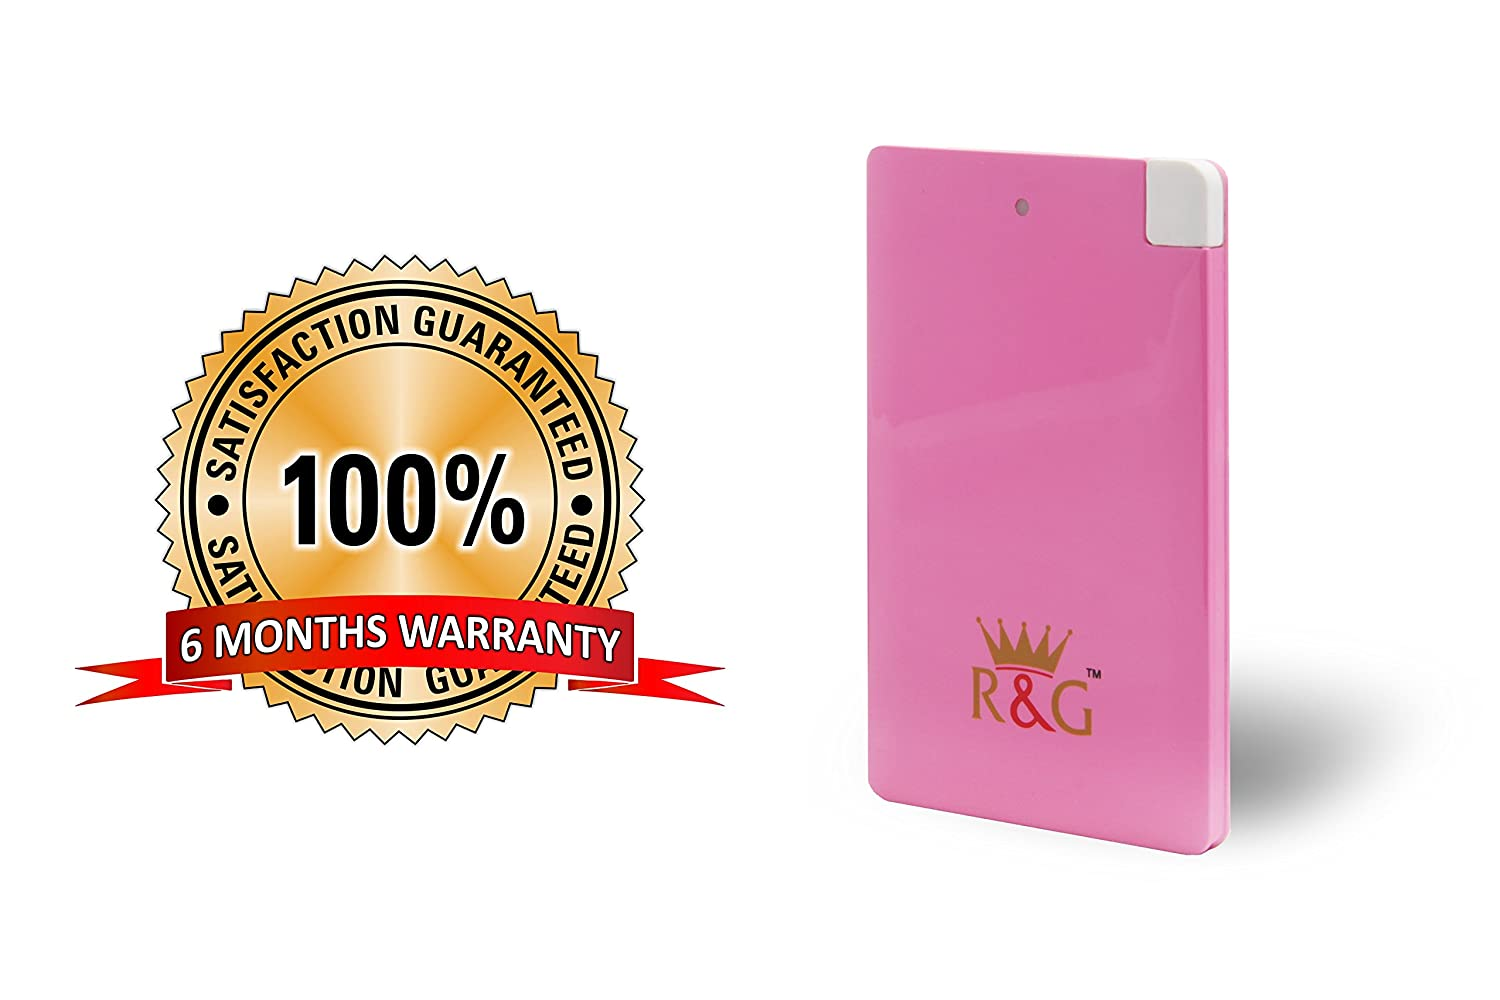 R&G 2500 mAh - World's Slimmest Automatic Power Bank - Pink - With Built-in Micro USB Cable (Weighs Just 55 Grams !! )